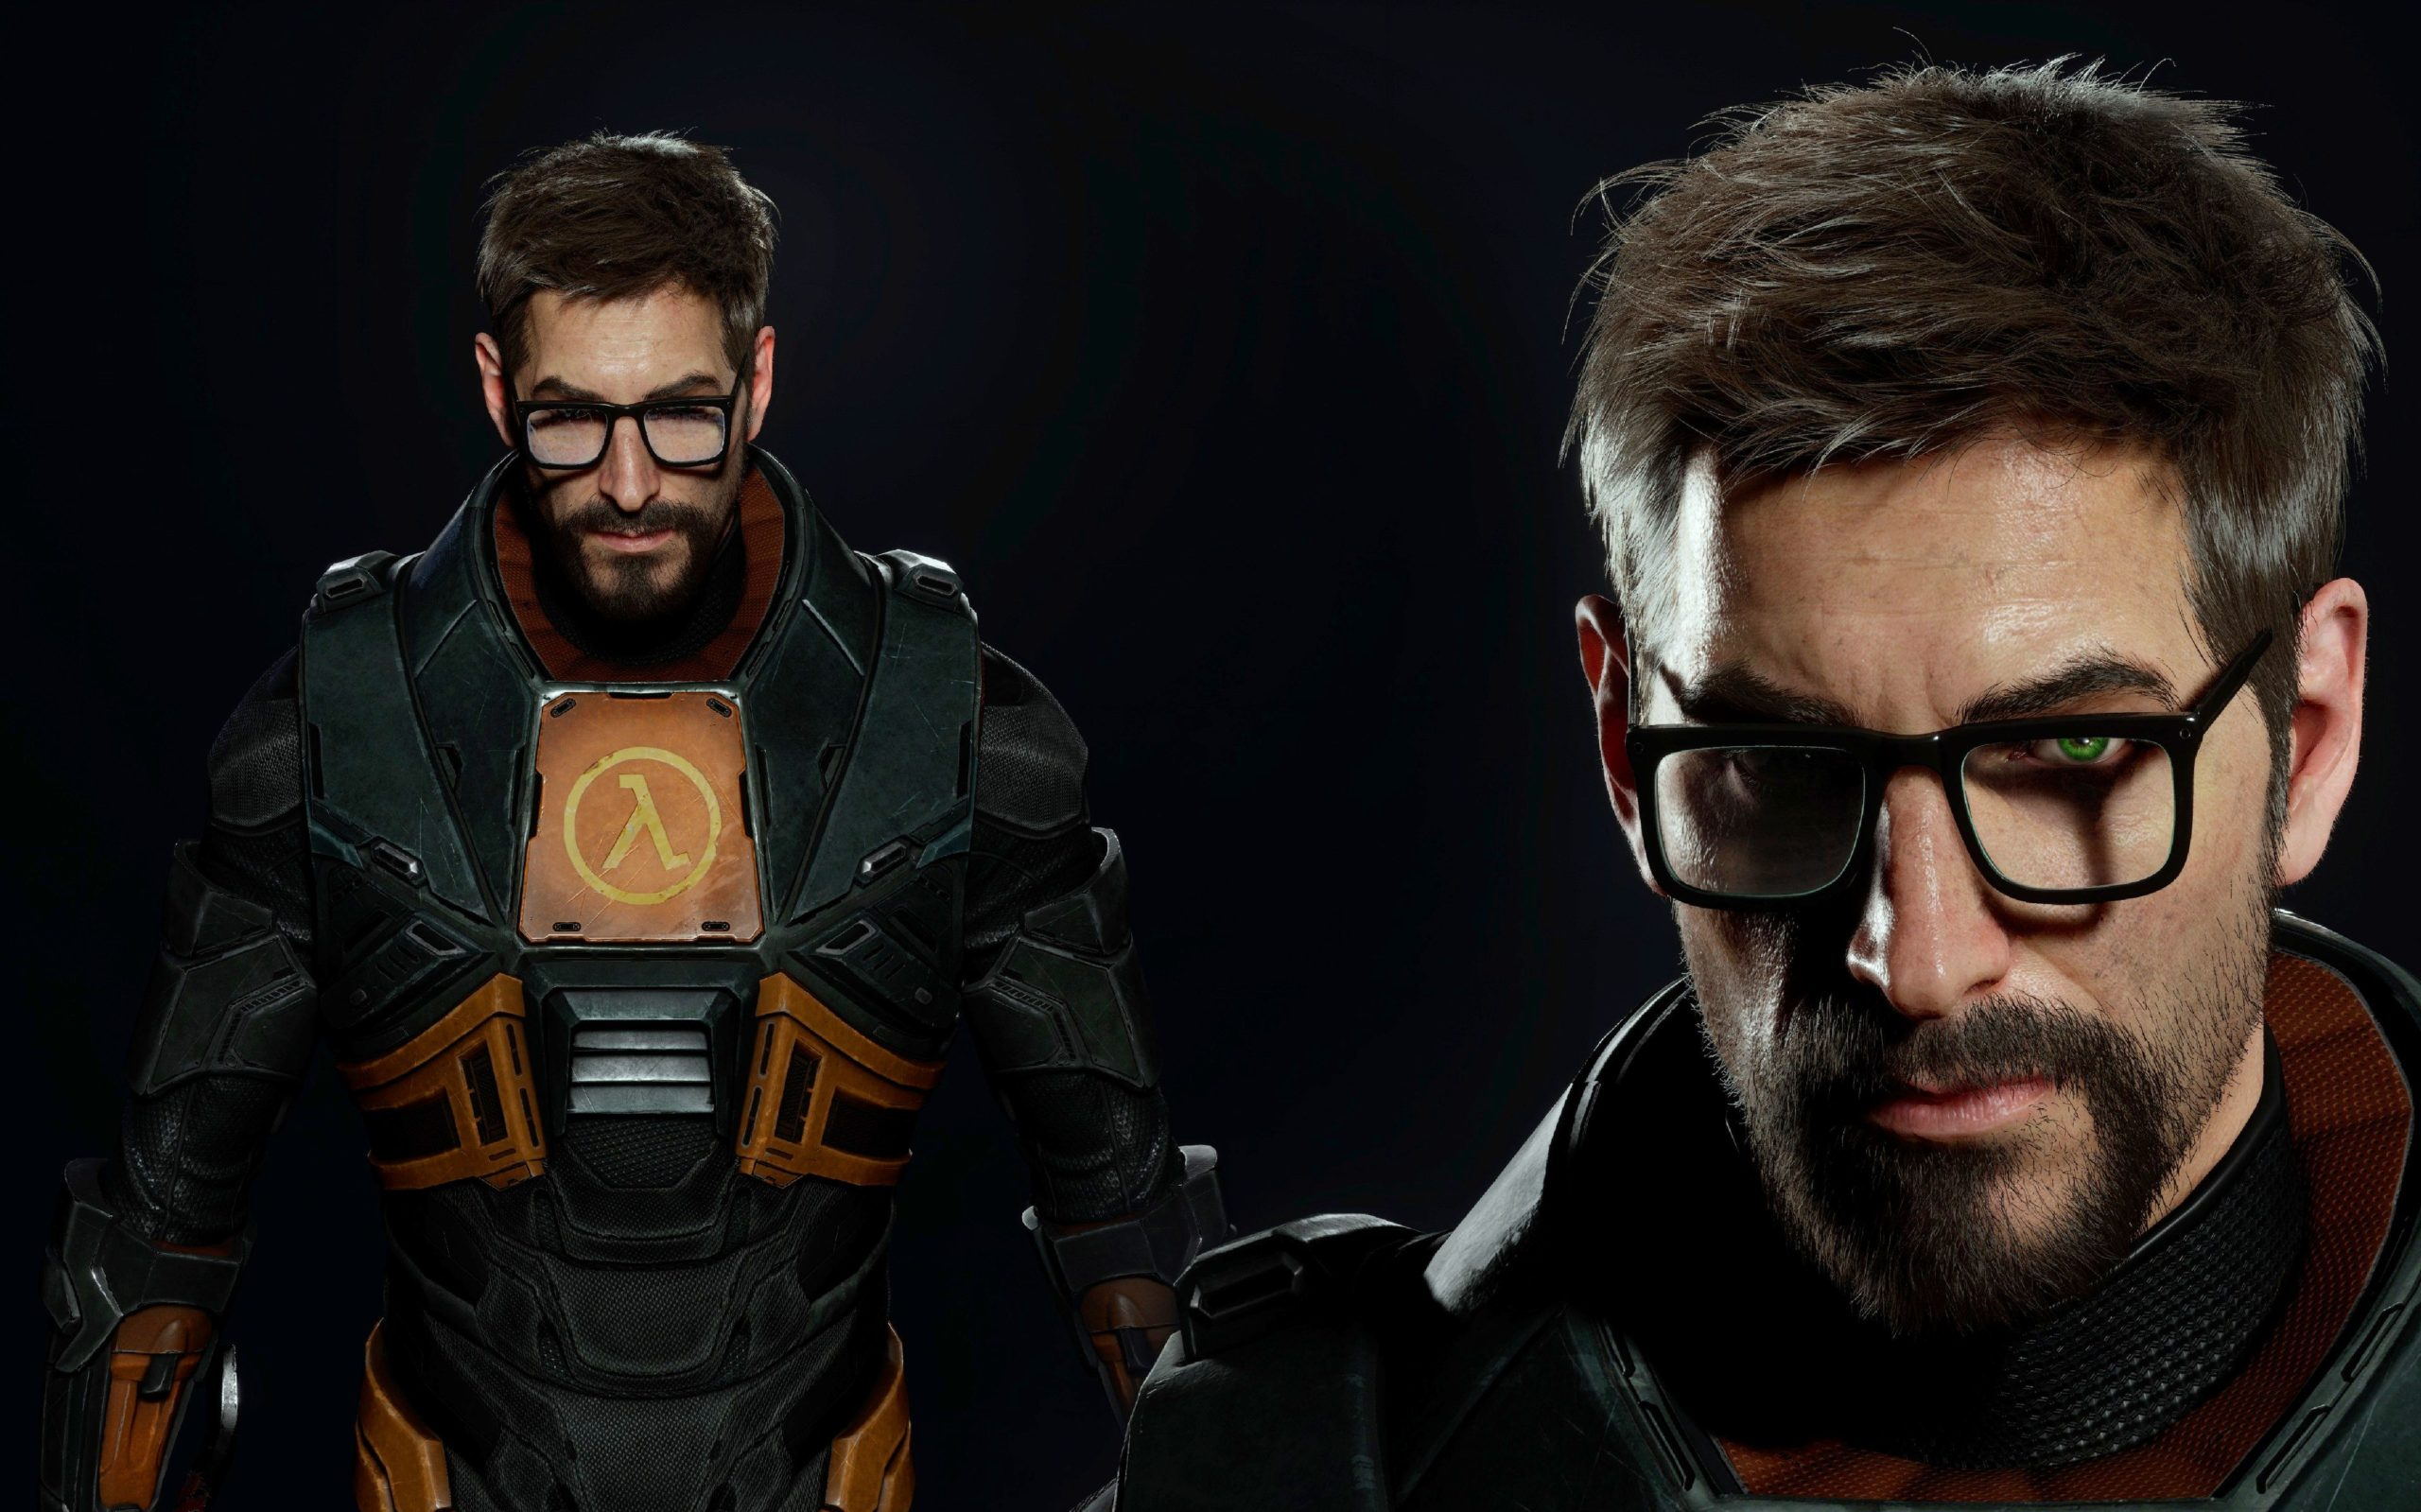 Gordon Freeman Face HEV Suit Half-Life 3